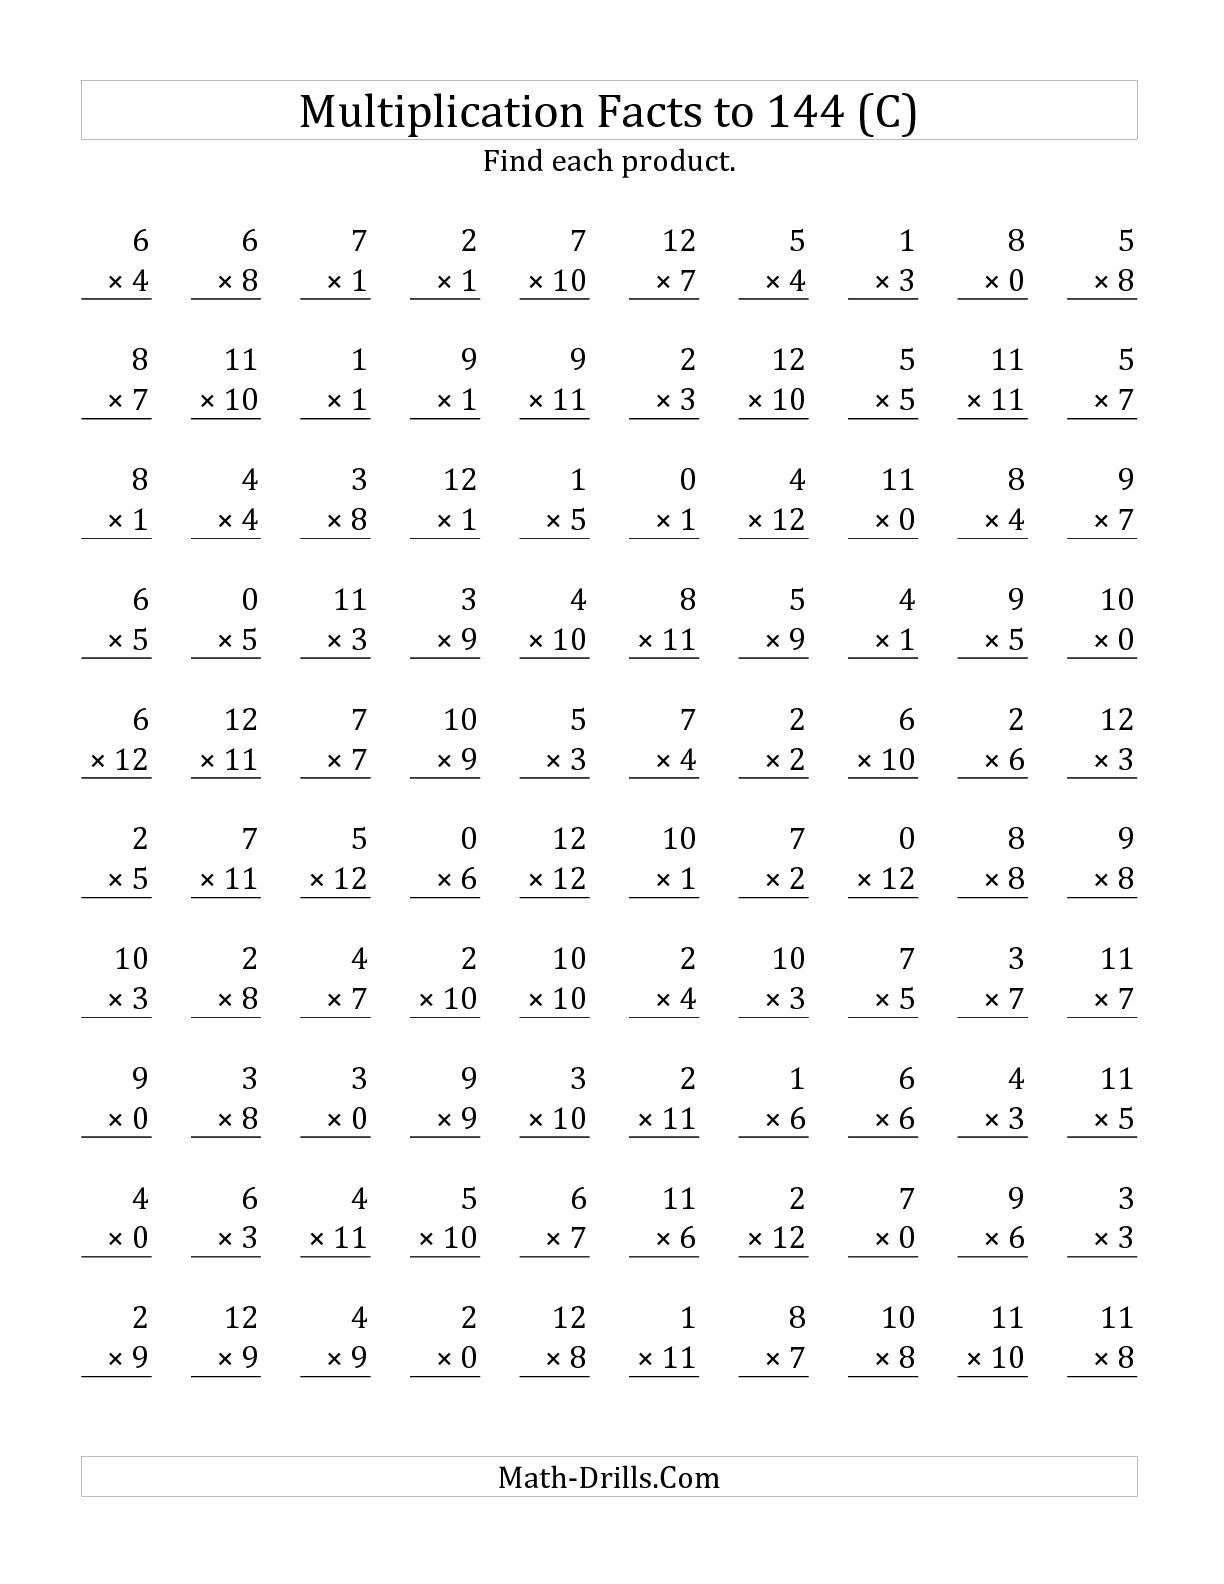 The Multiplication Facts To 144 Including Zeros C Math Worksheet From The Multiplication